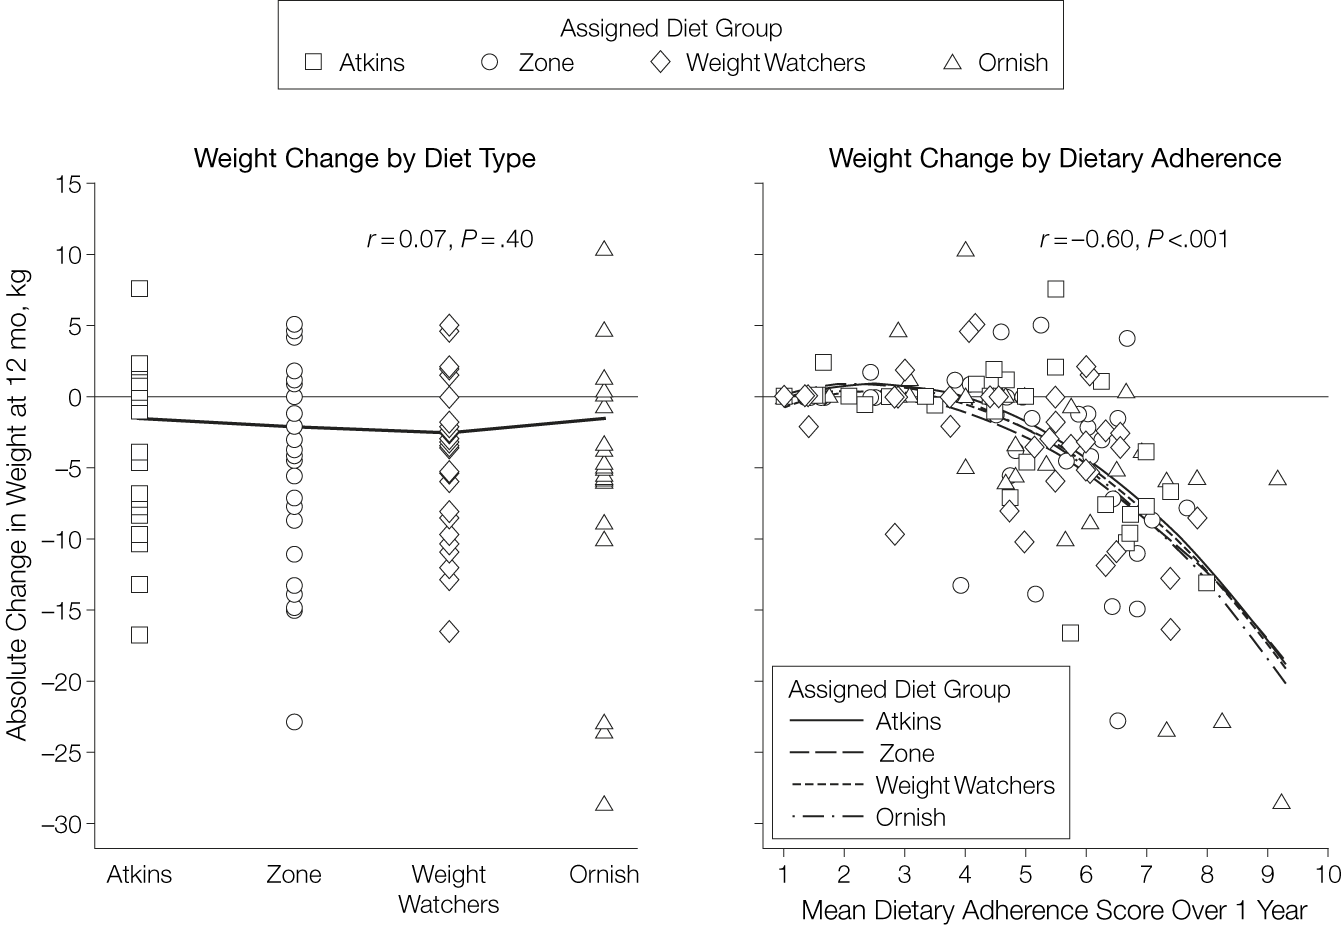 chart showing the dietary adherence for various diets